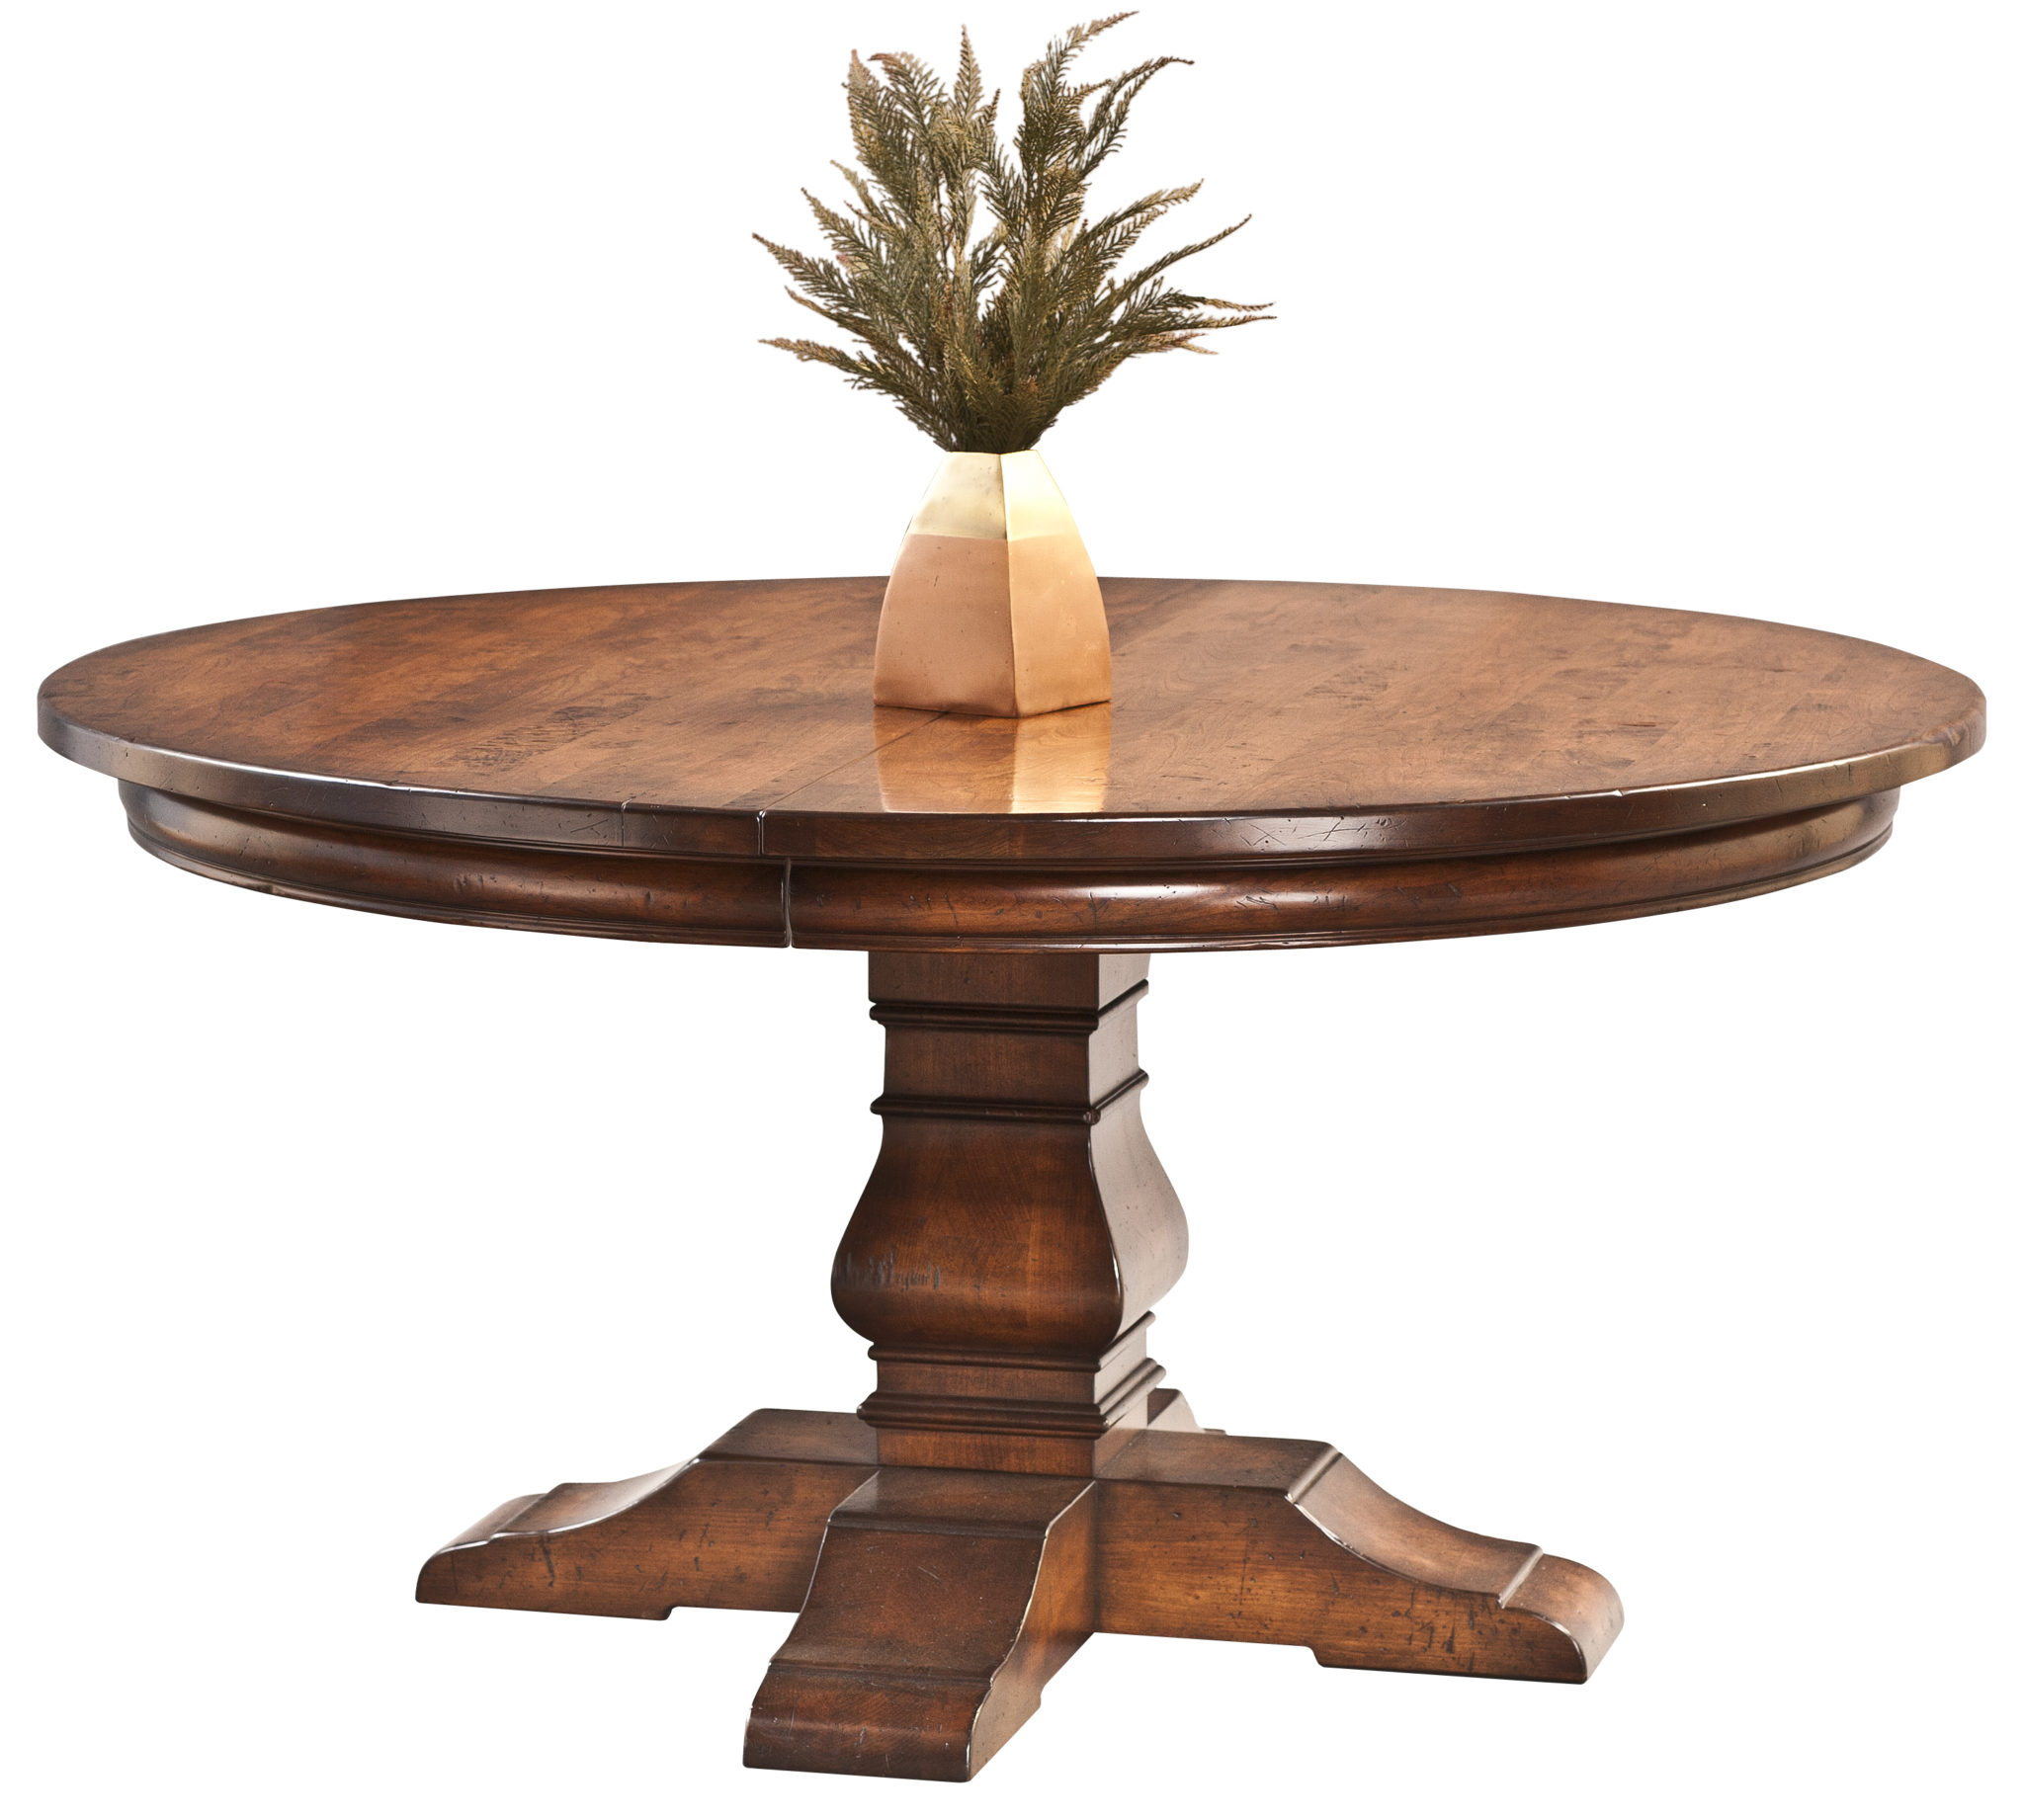 Tuscan Style Dining Room Furniture: Tuscan Dining Room Table And Chairs The Most Impressive